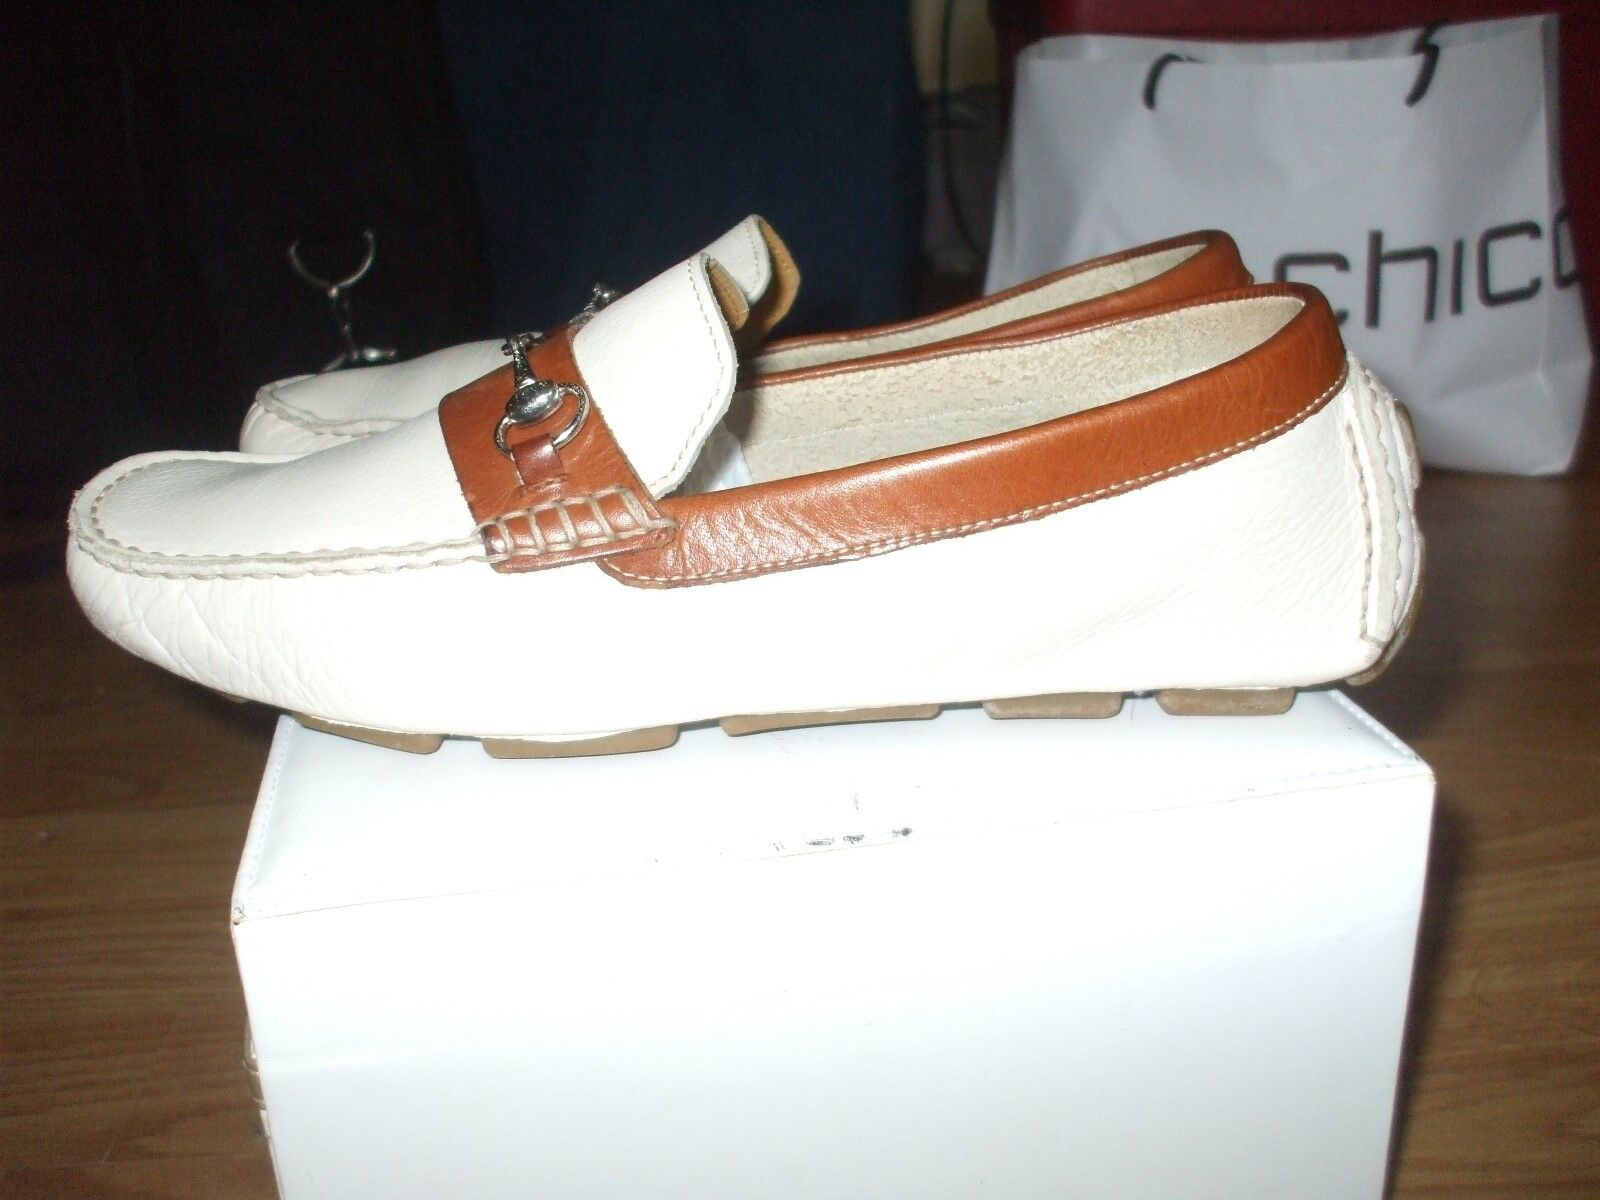 Cole Haan white brown buckle leather oxfords loafers school casual comfort shoes